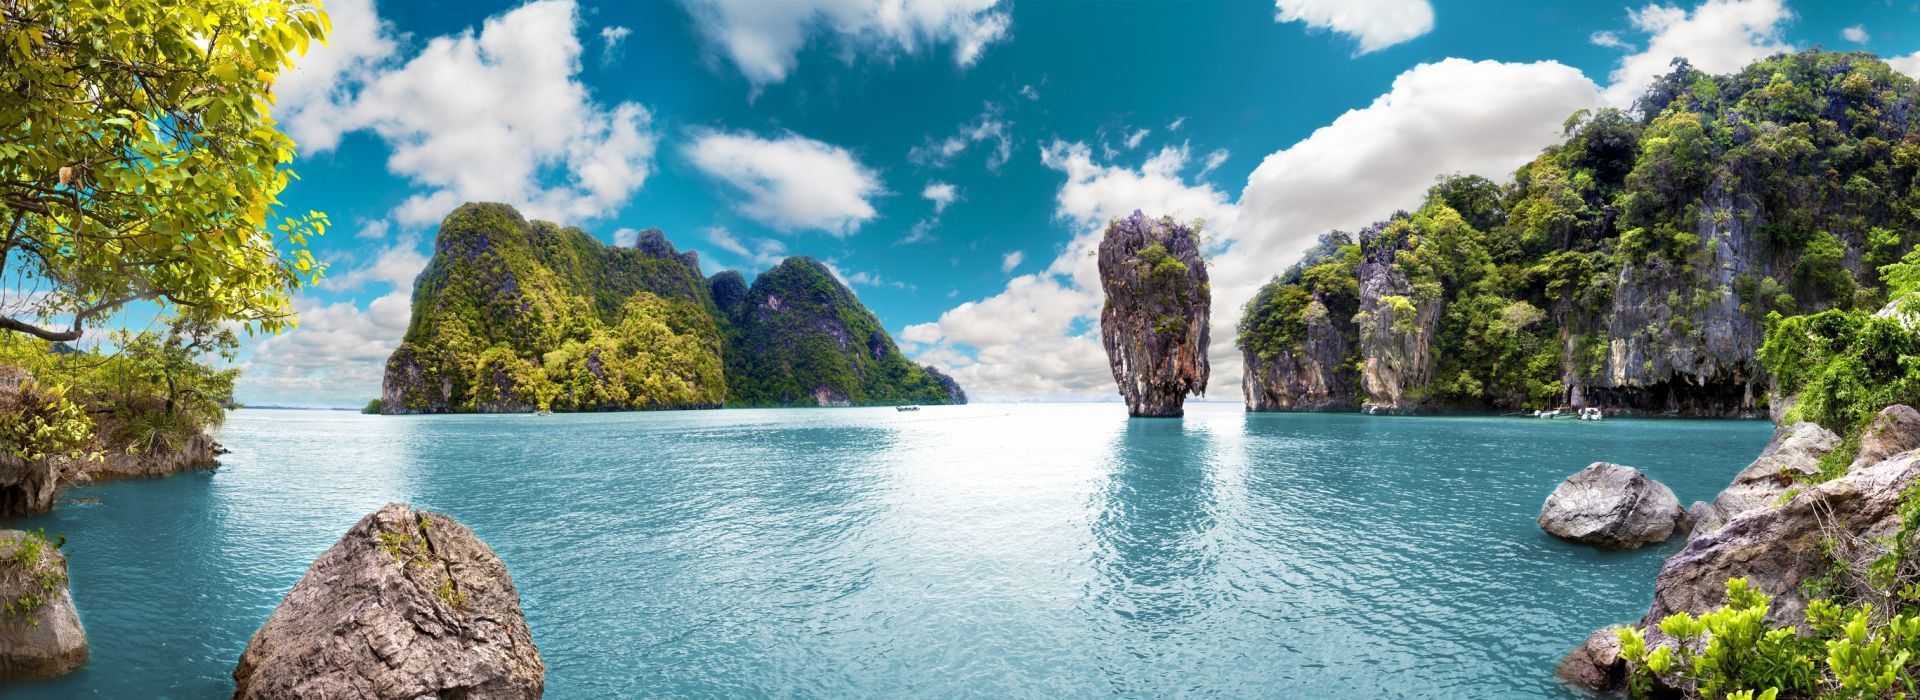 Adventure Tours in Krabi